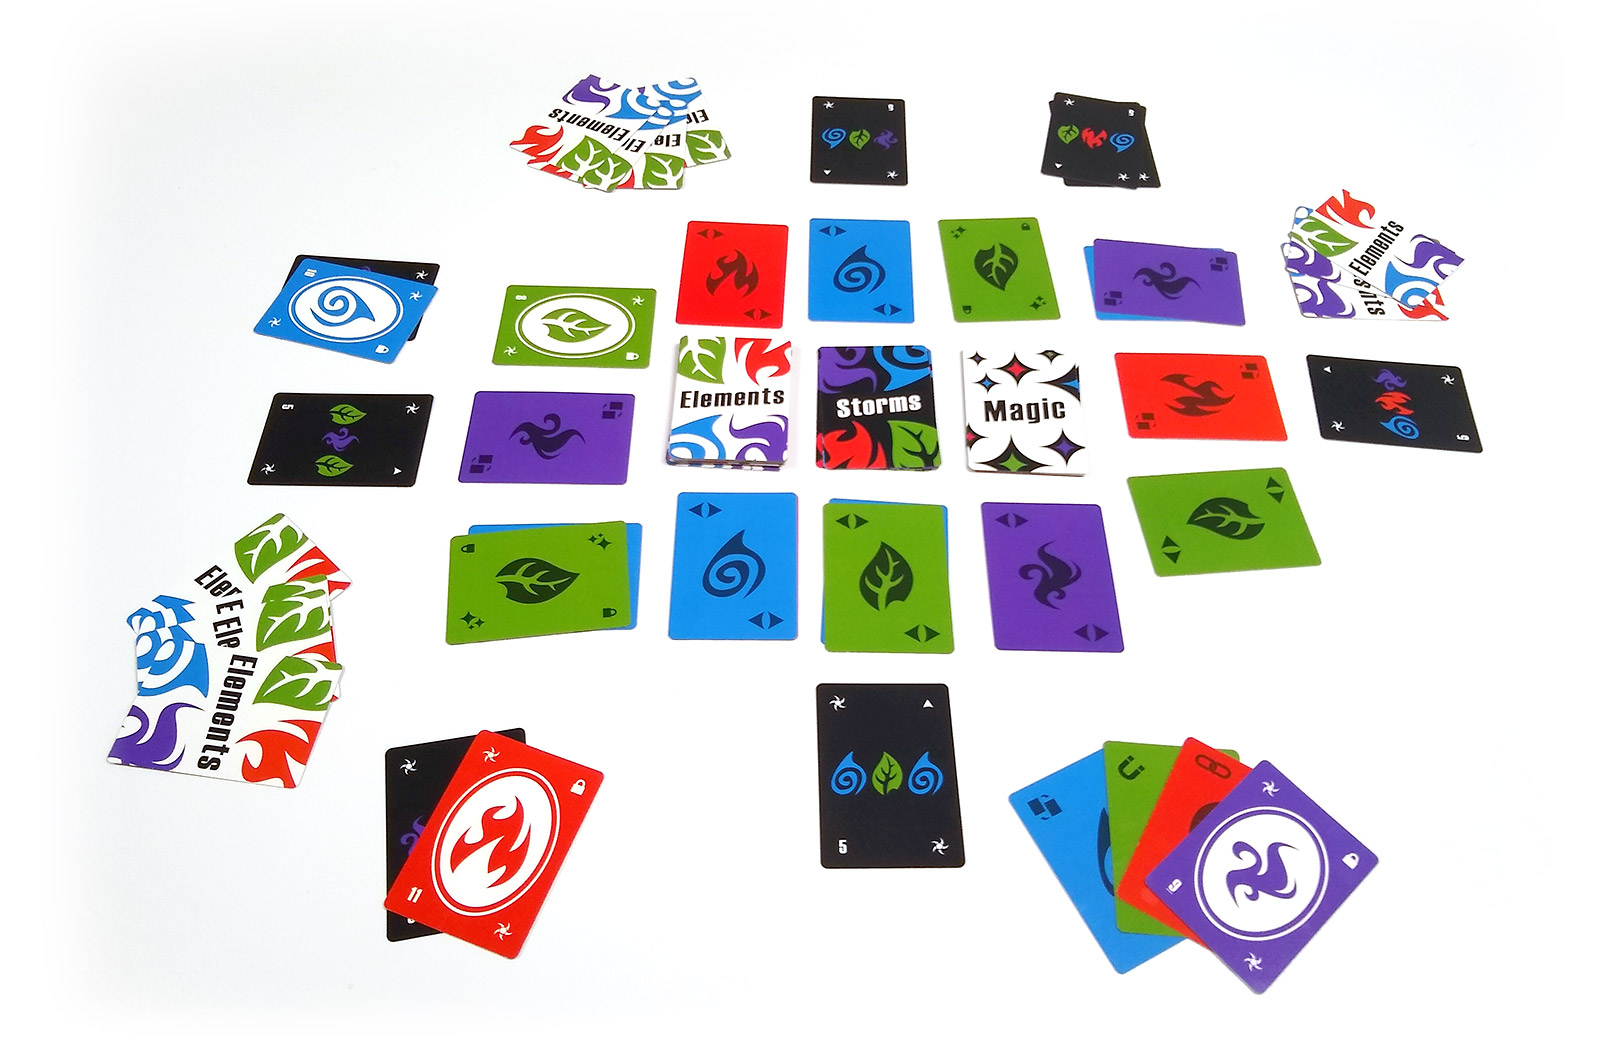 Elemental Storm - Magical Card Game of Strategy and Matching